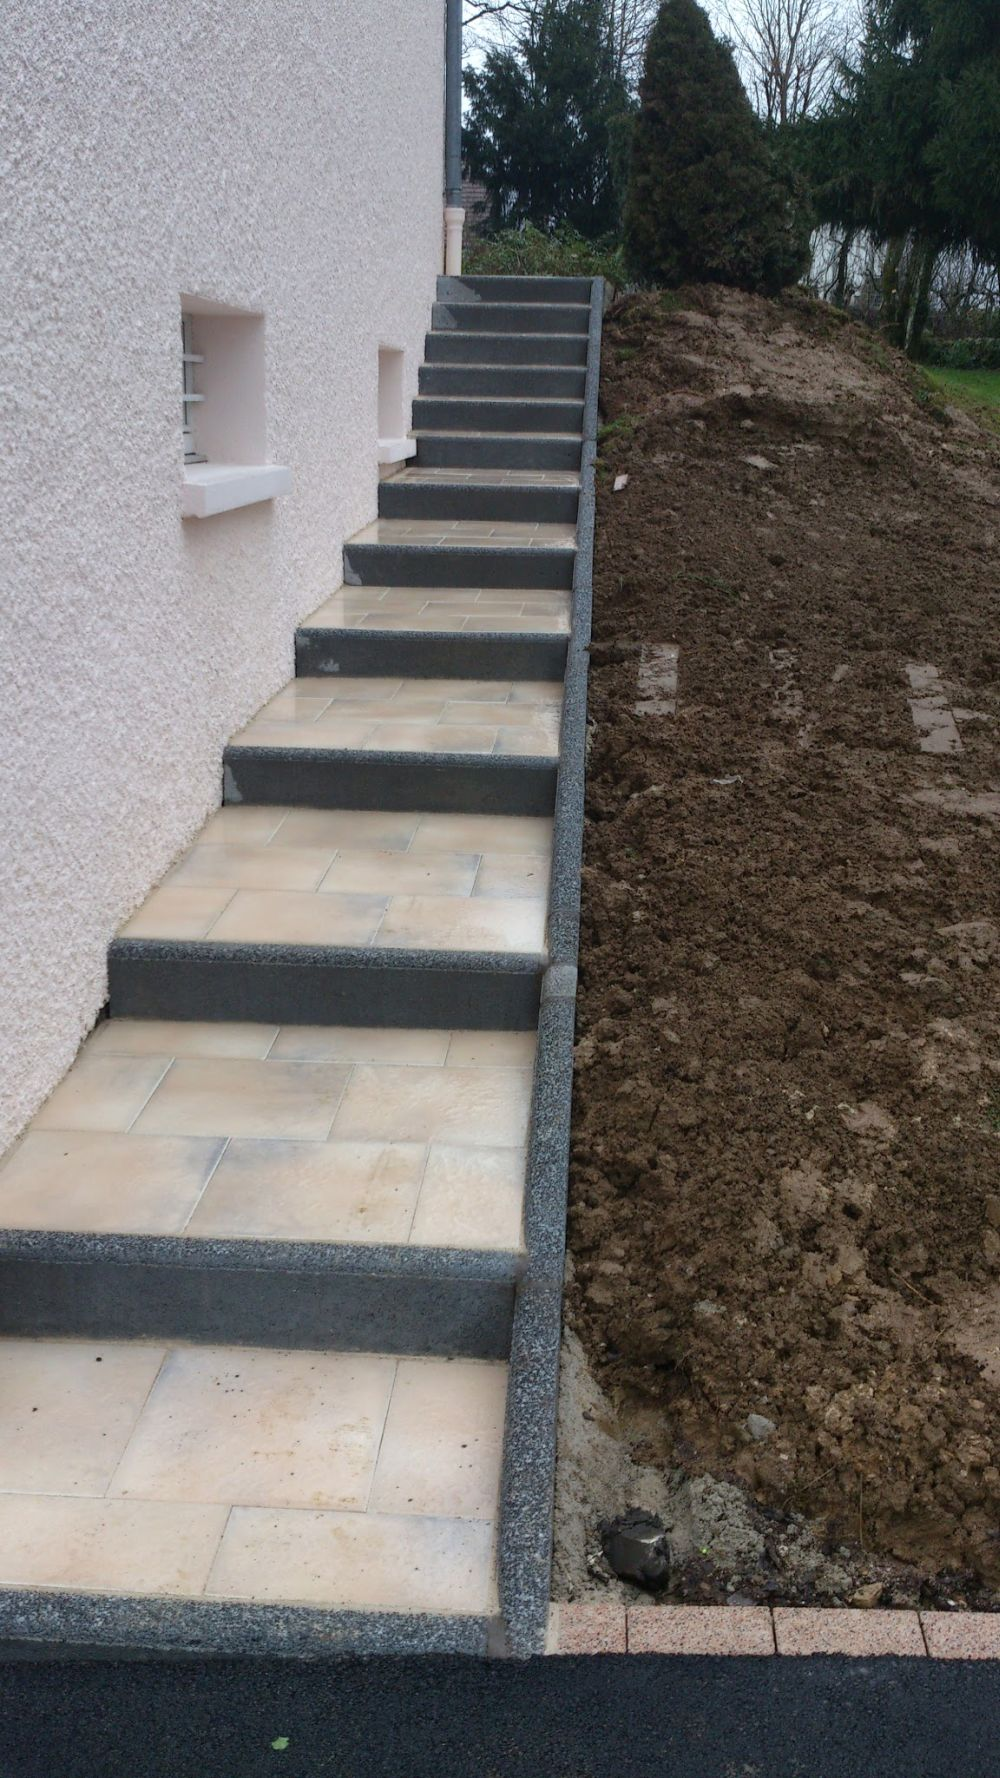 Escalier ext rieur cuinet am nagement ext rieur for Habillage escalier beton exterieur